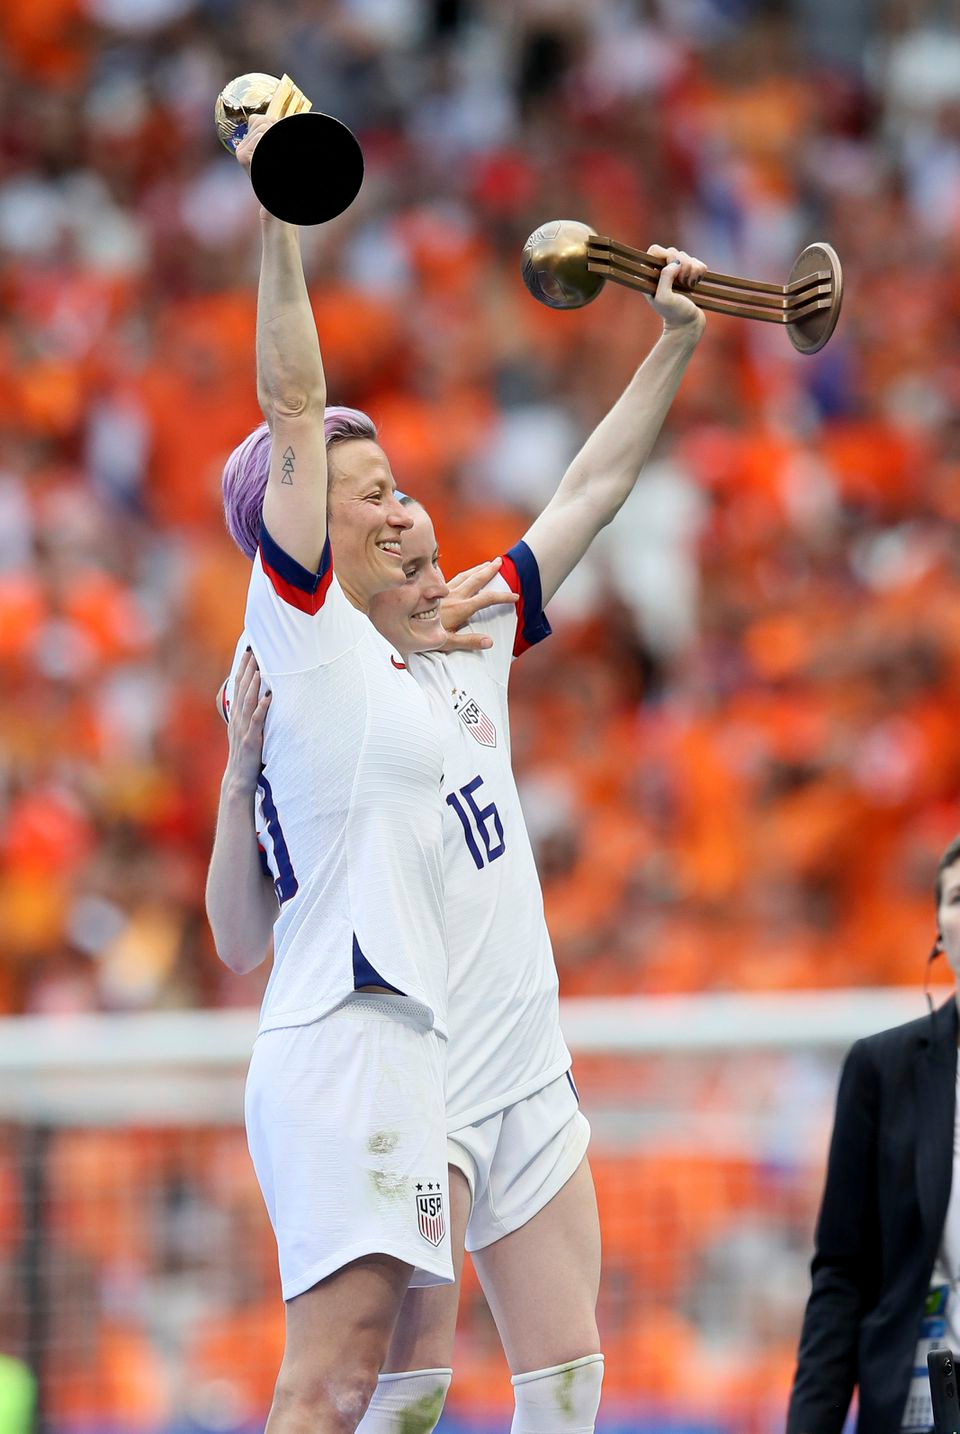 Women S World Cup Final 2019 Recap Usa S Megan Rapinoe Rose Lavelle Lead Uswnt Over Netherlands In 2020 Uswnt Megan Rapinoe World Cup Jerseys